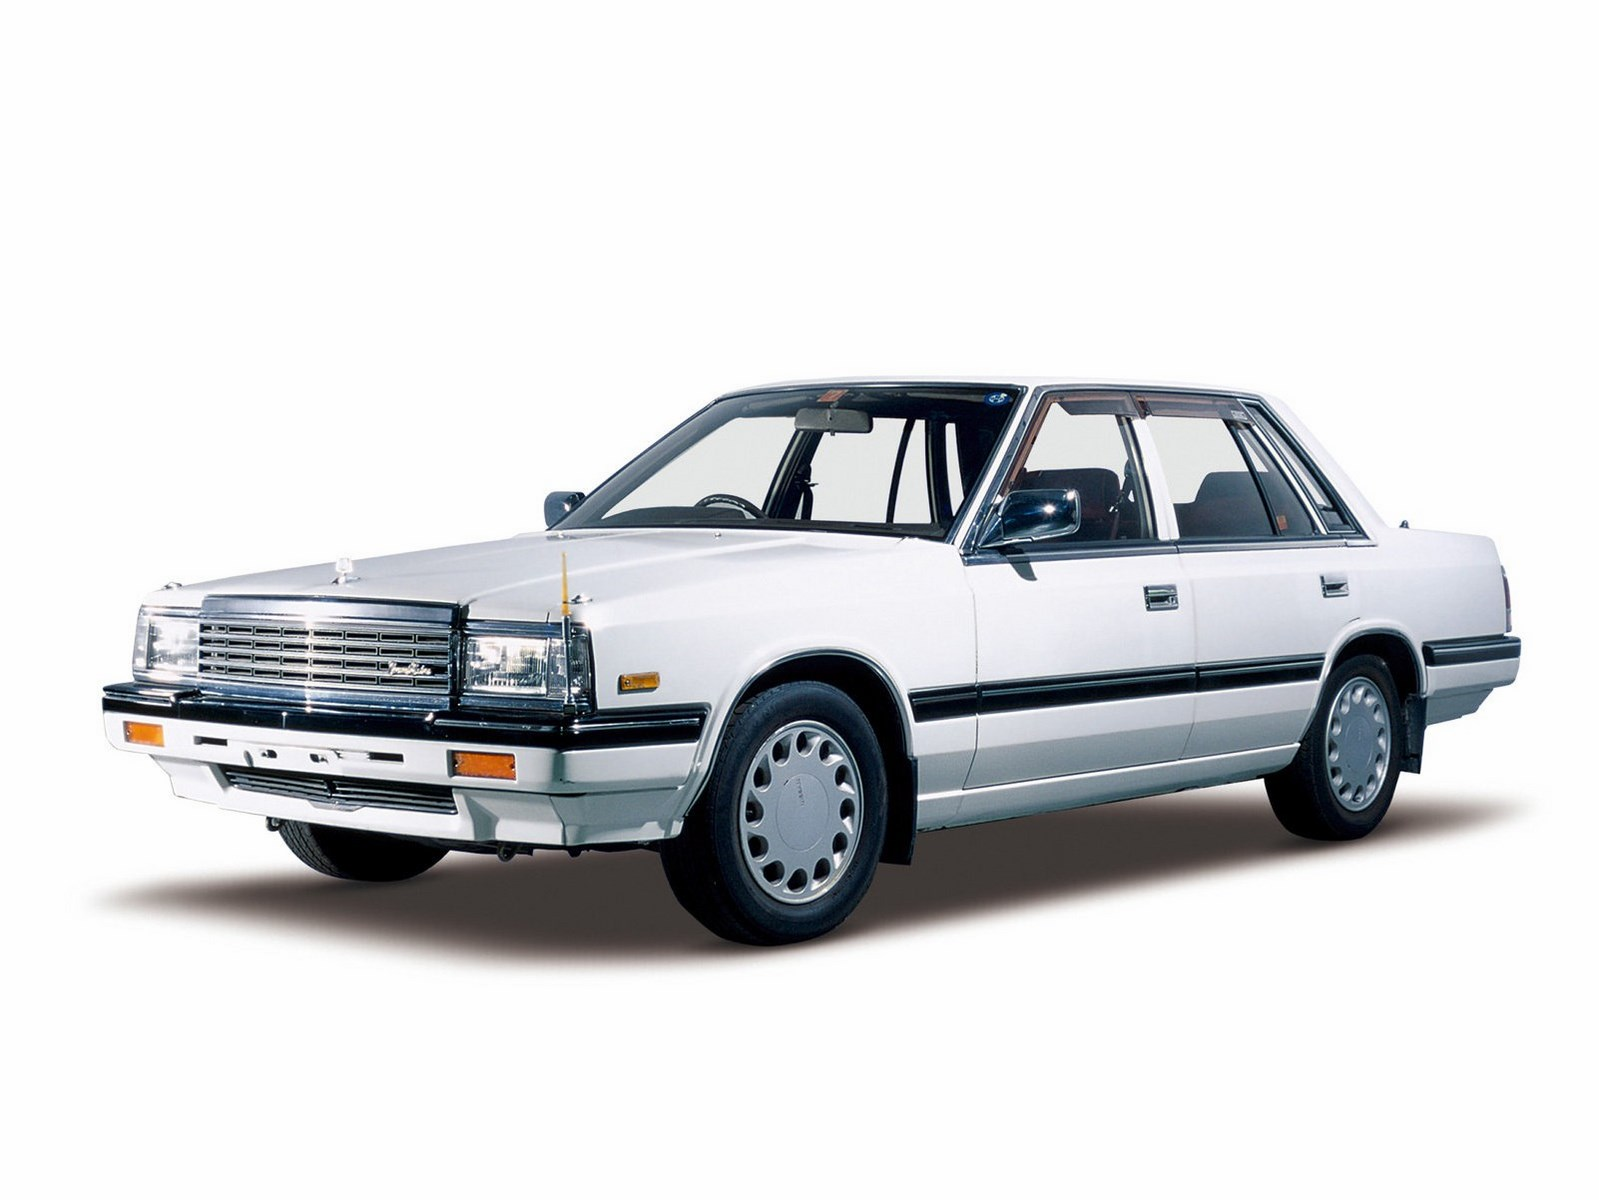 1989 Nissan Laurel #18